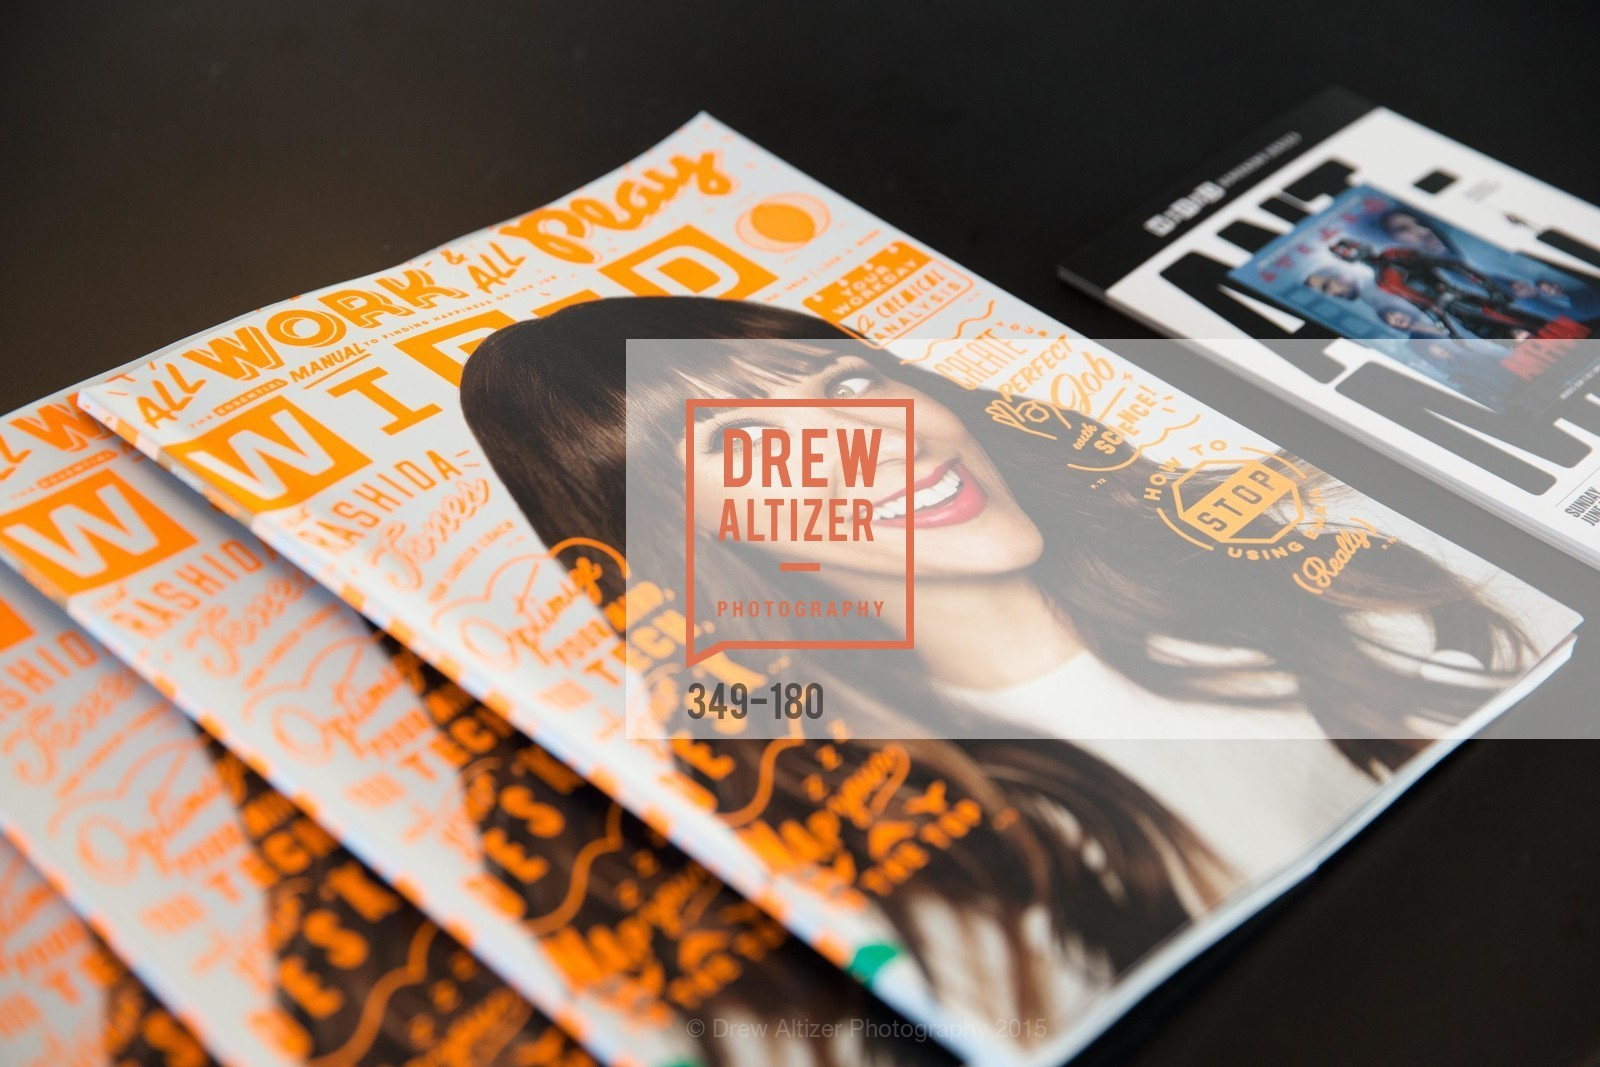 Atmosphere, Wired Magazine July Cover Release Celebration at New Wired Office, Wired Magazine Offices. 520 3rd Street, June 24th, 2015,Drew Altizer, Drew Altizer Photography, full-service event agency, private events, San Francisco photographer, photographer California